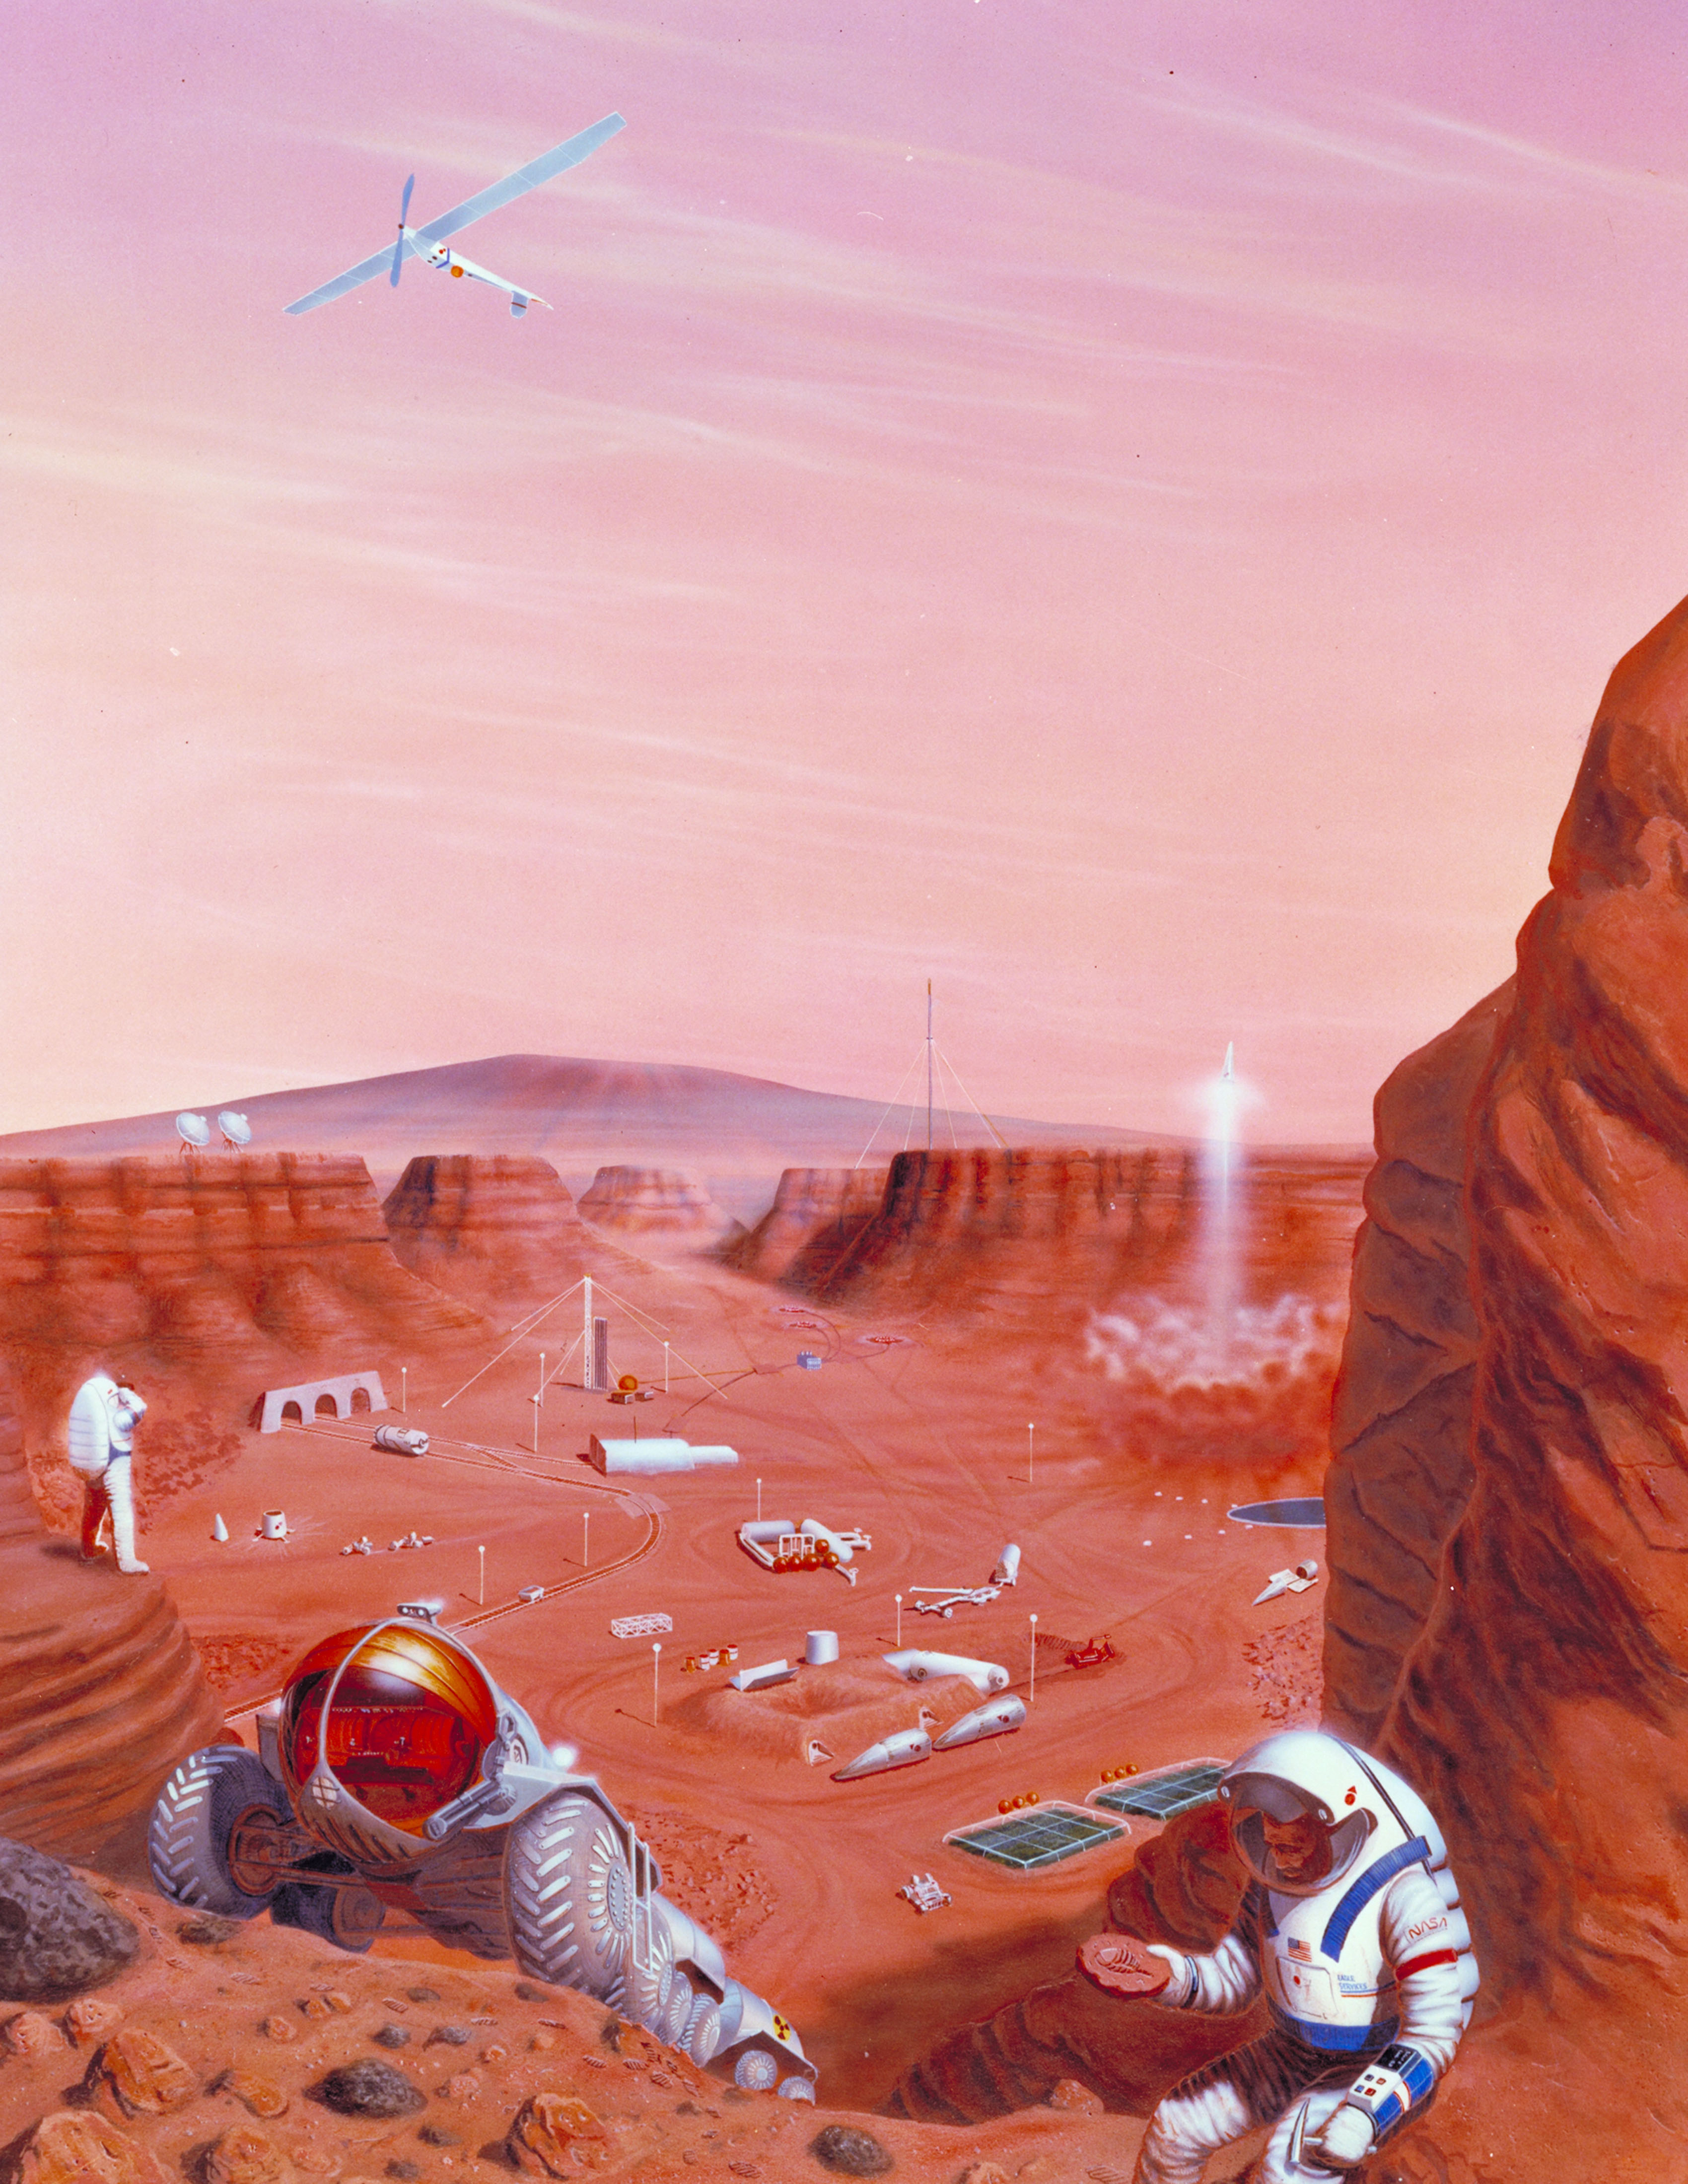 Figure 7: An artist's depiction of humans colonizing Mars. Credit: NASA.